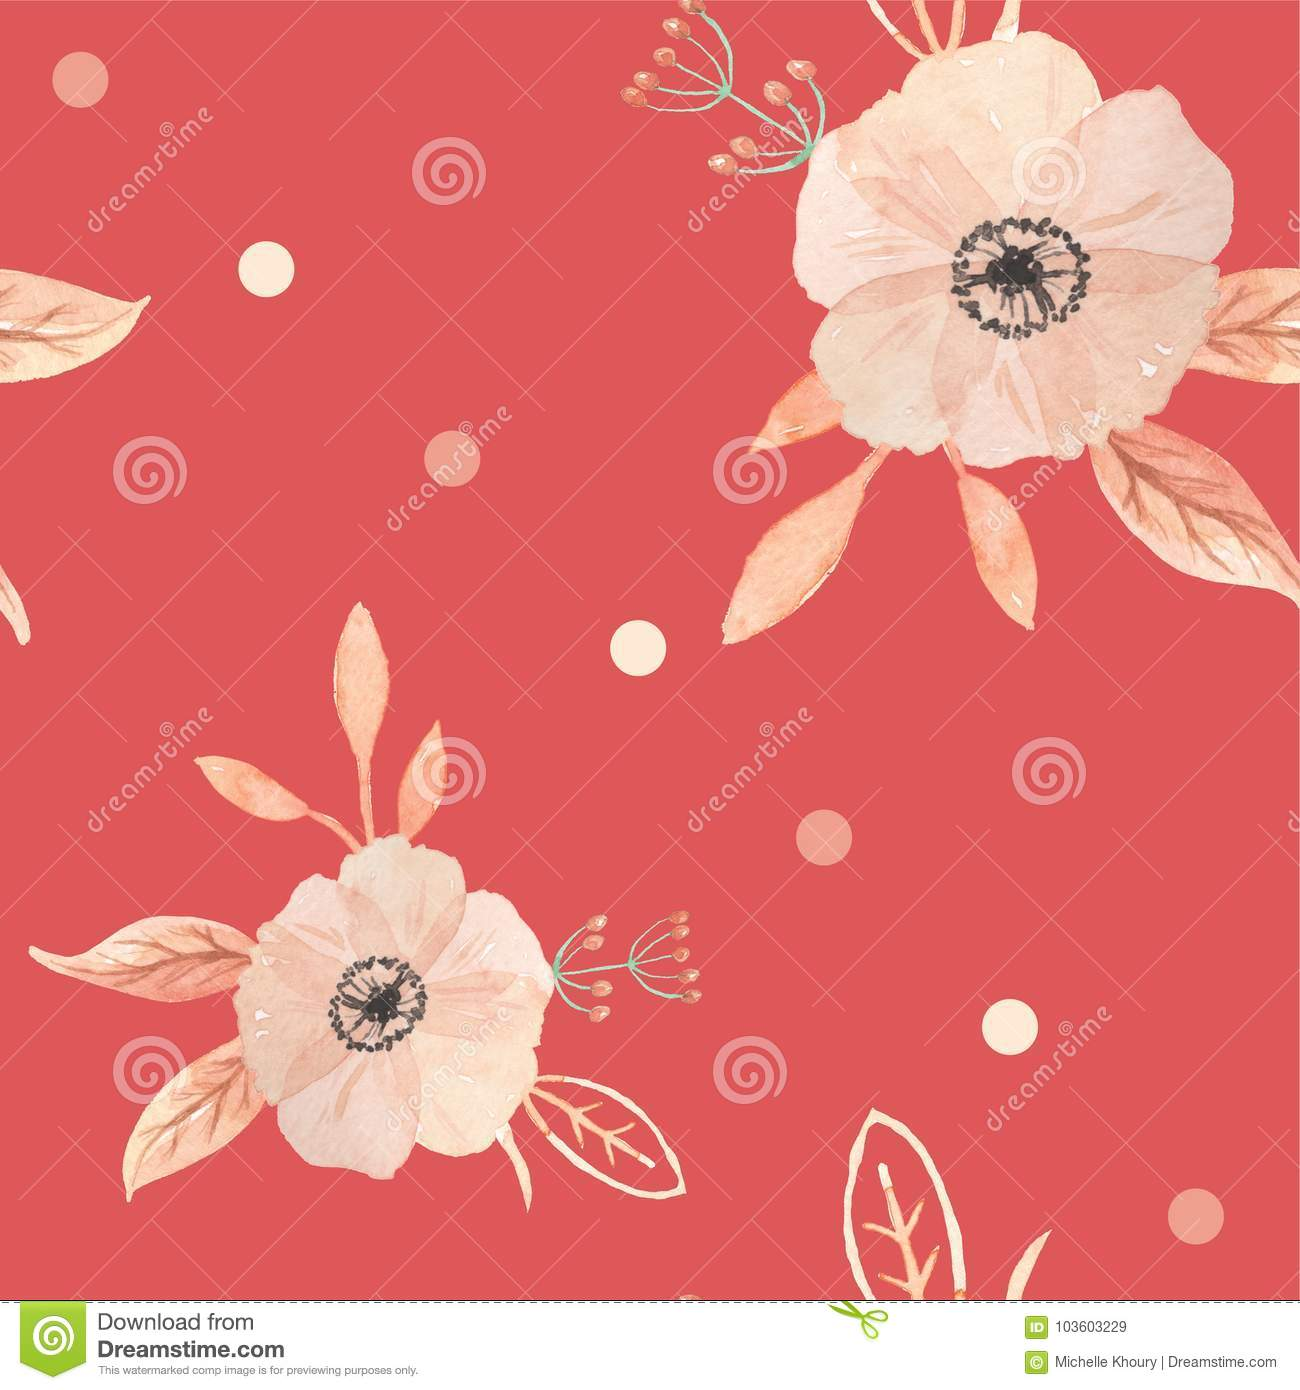 Watercolor Flowers Berries Painted Seamless Pattern Autumn Fall Stock Illustration Illustration Of Clipart Borders 103603229